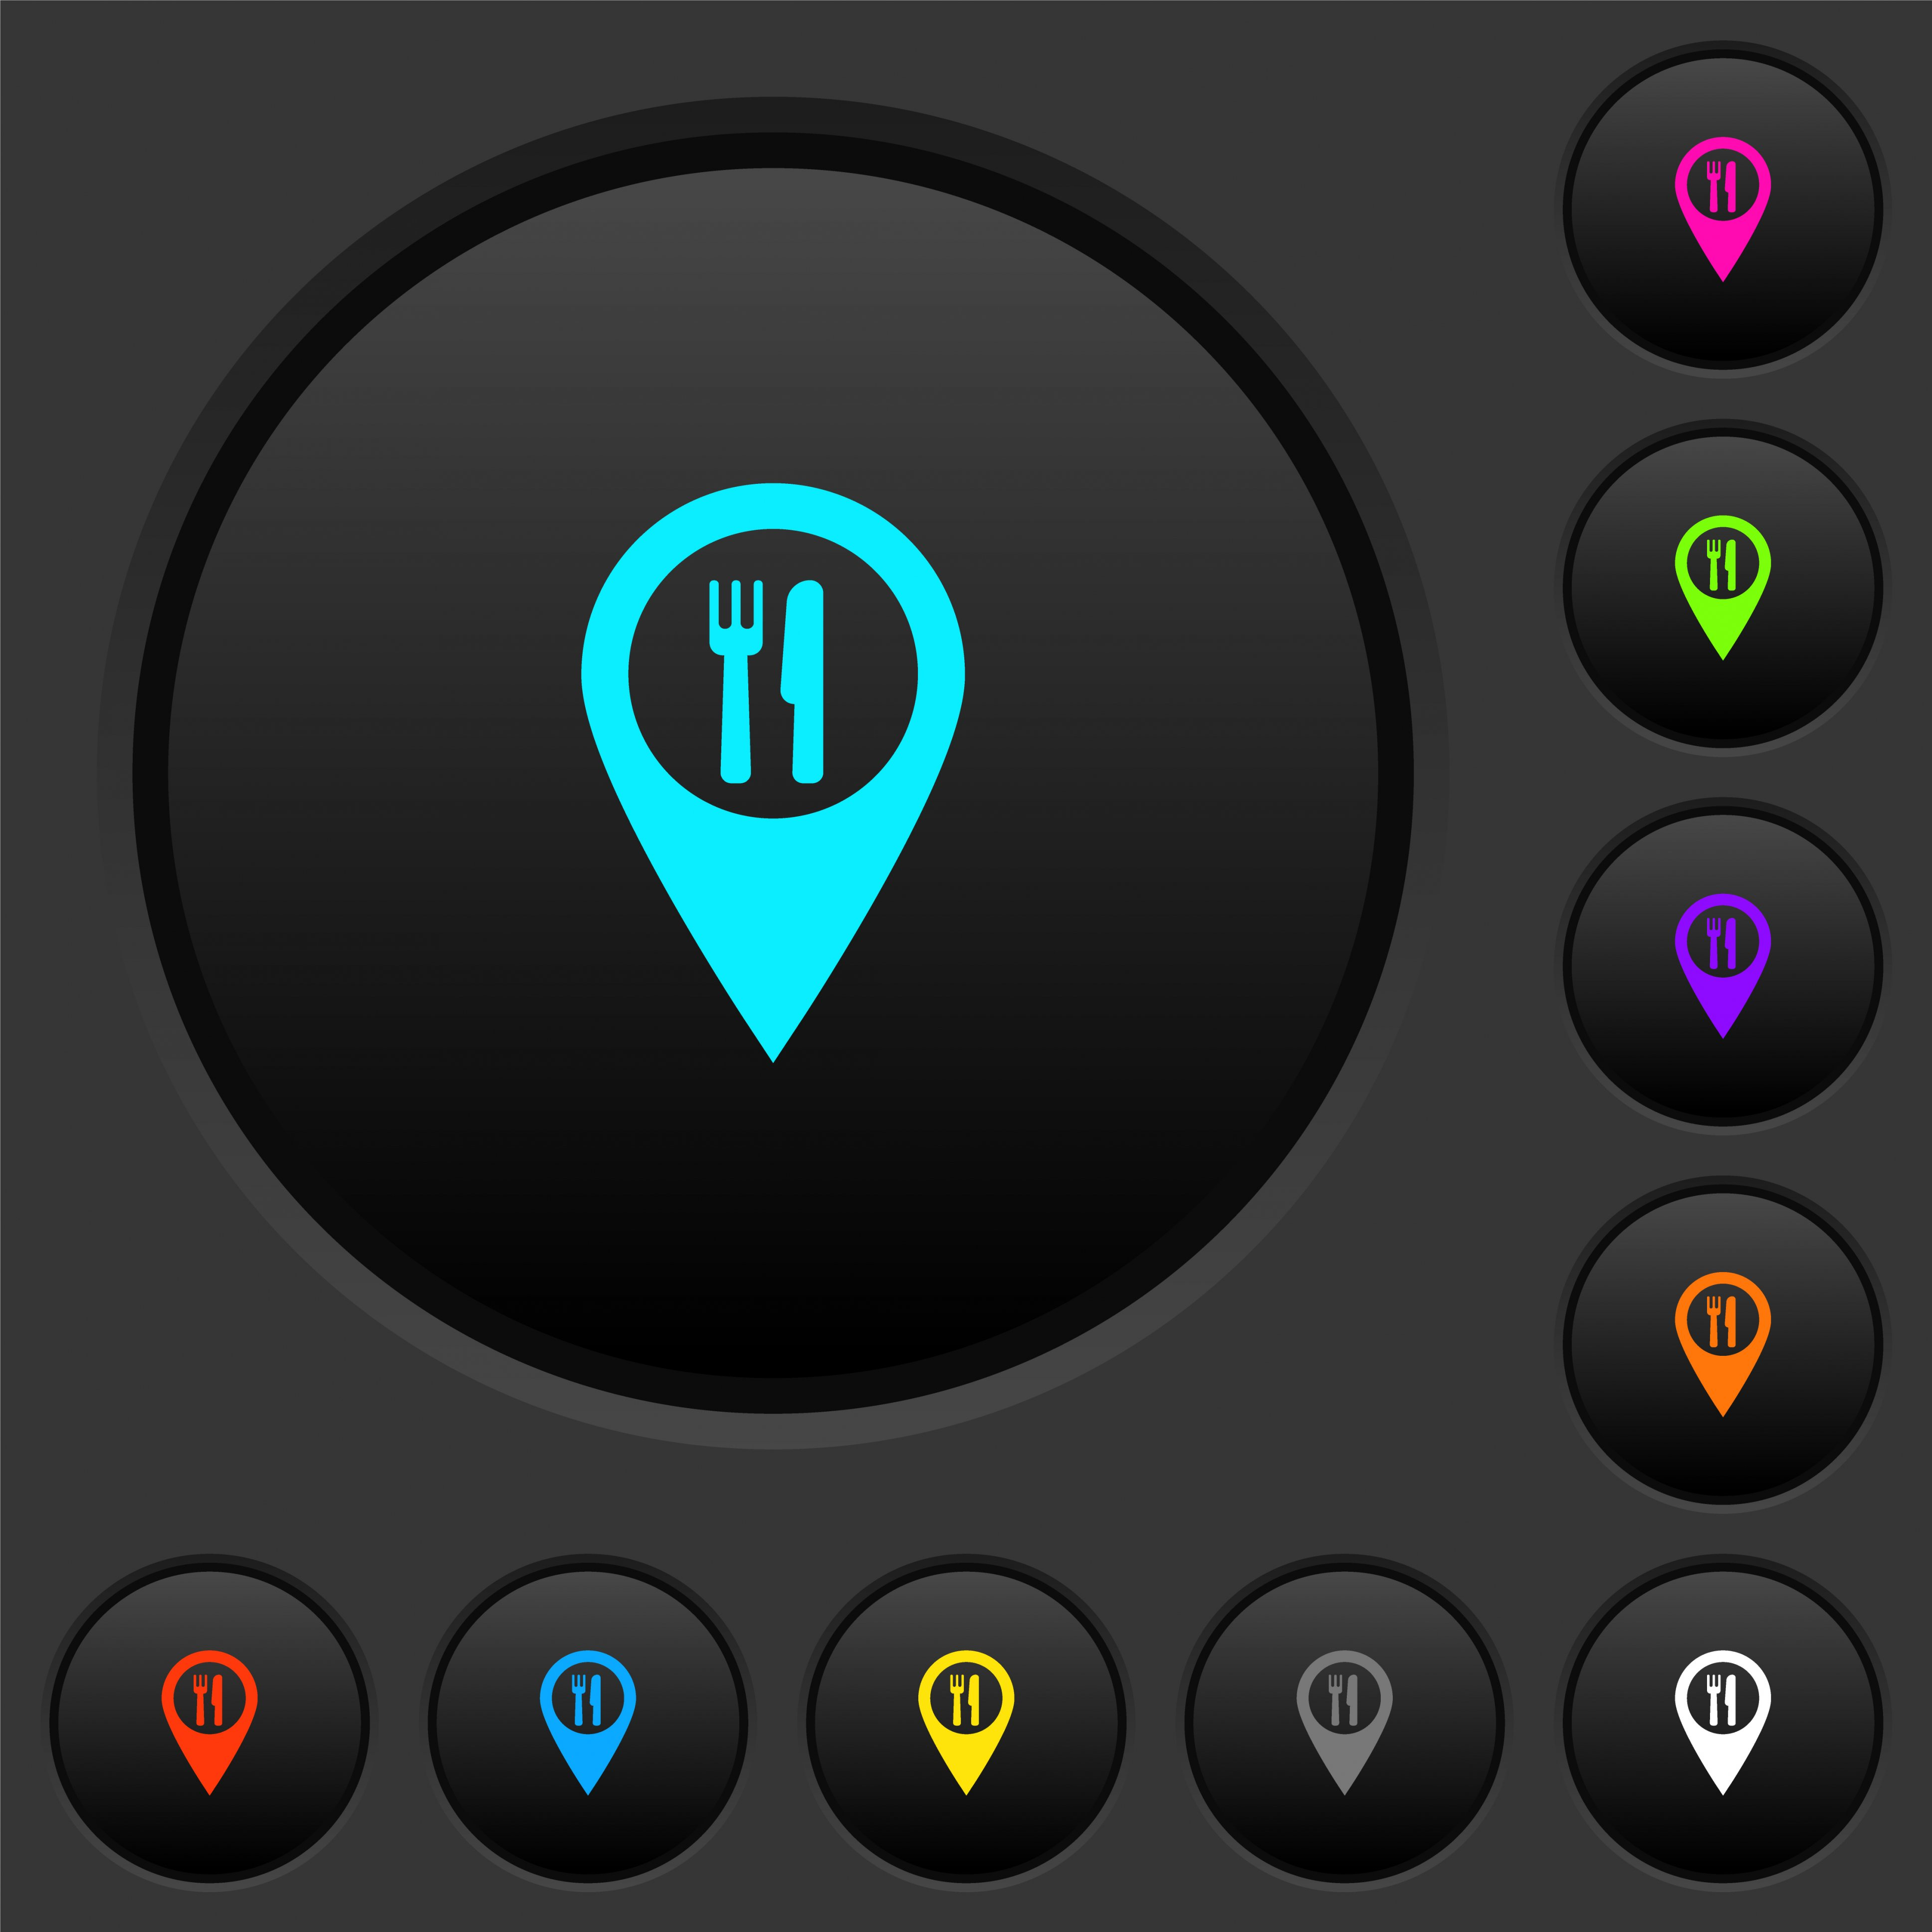 Restaurant GPS map location dark push buttons with vivid color icons on dark grey background - Free image